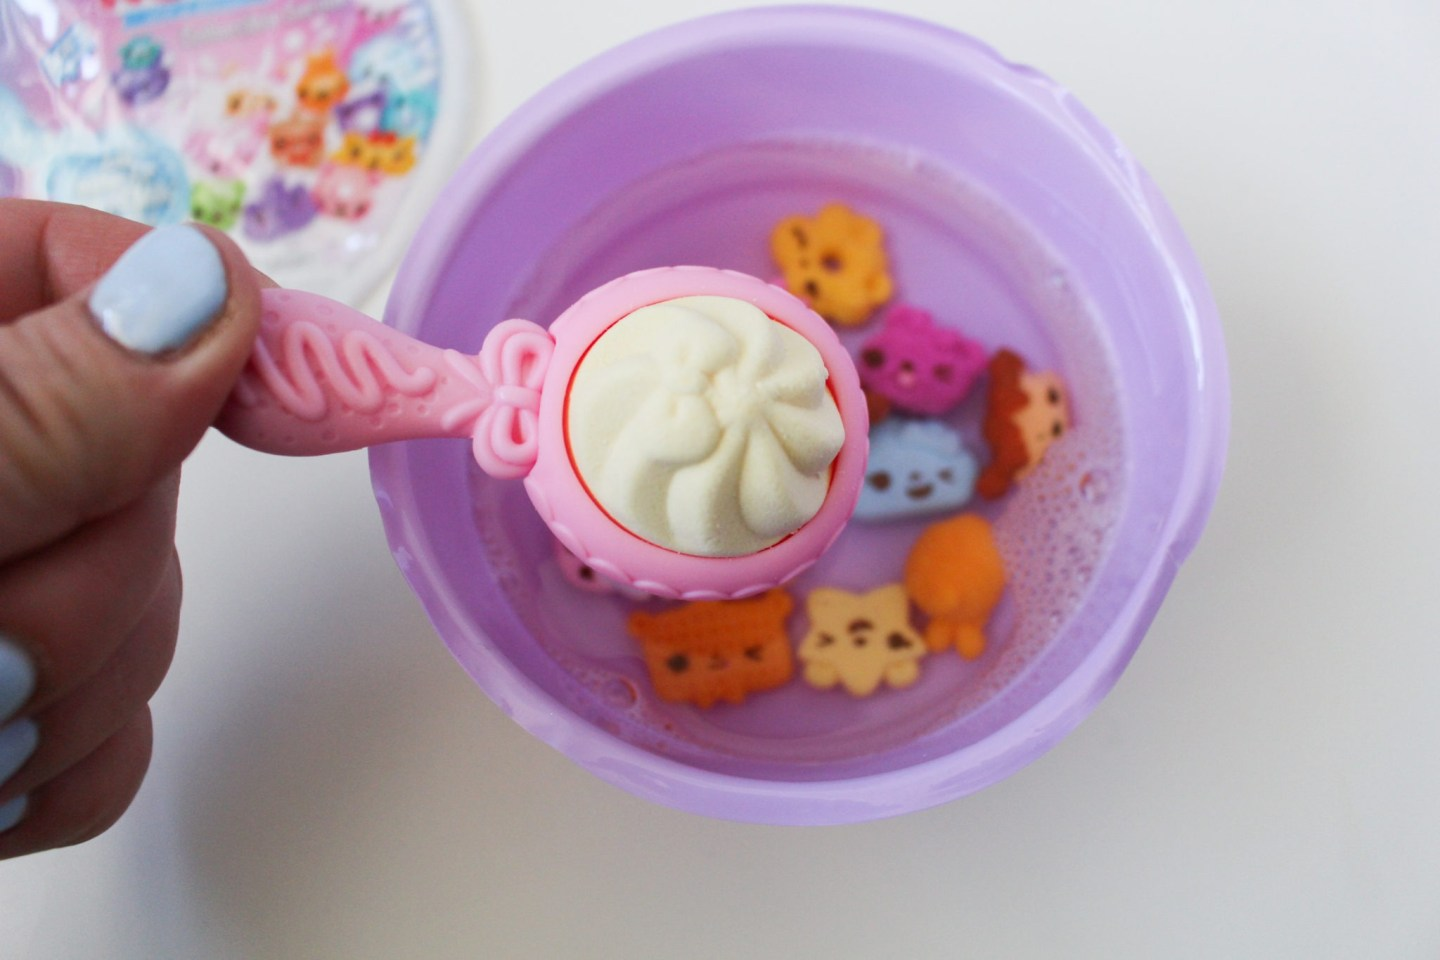 Num Noms Snackables Dippers and Cereal Review + Giveaway